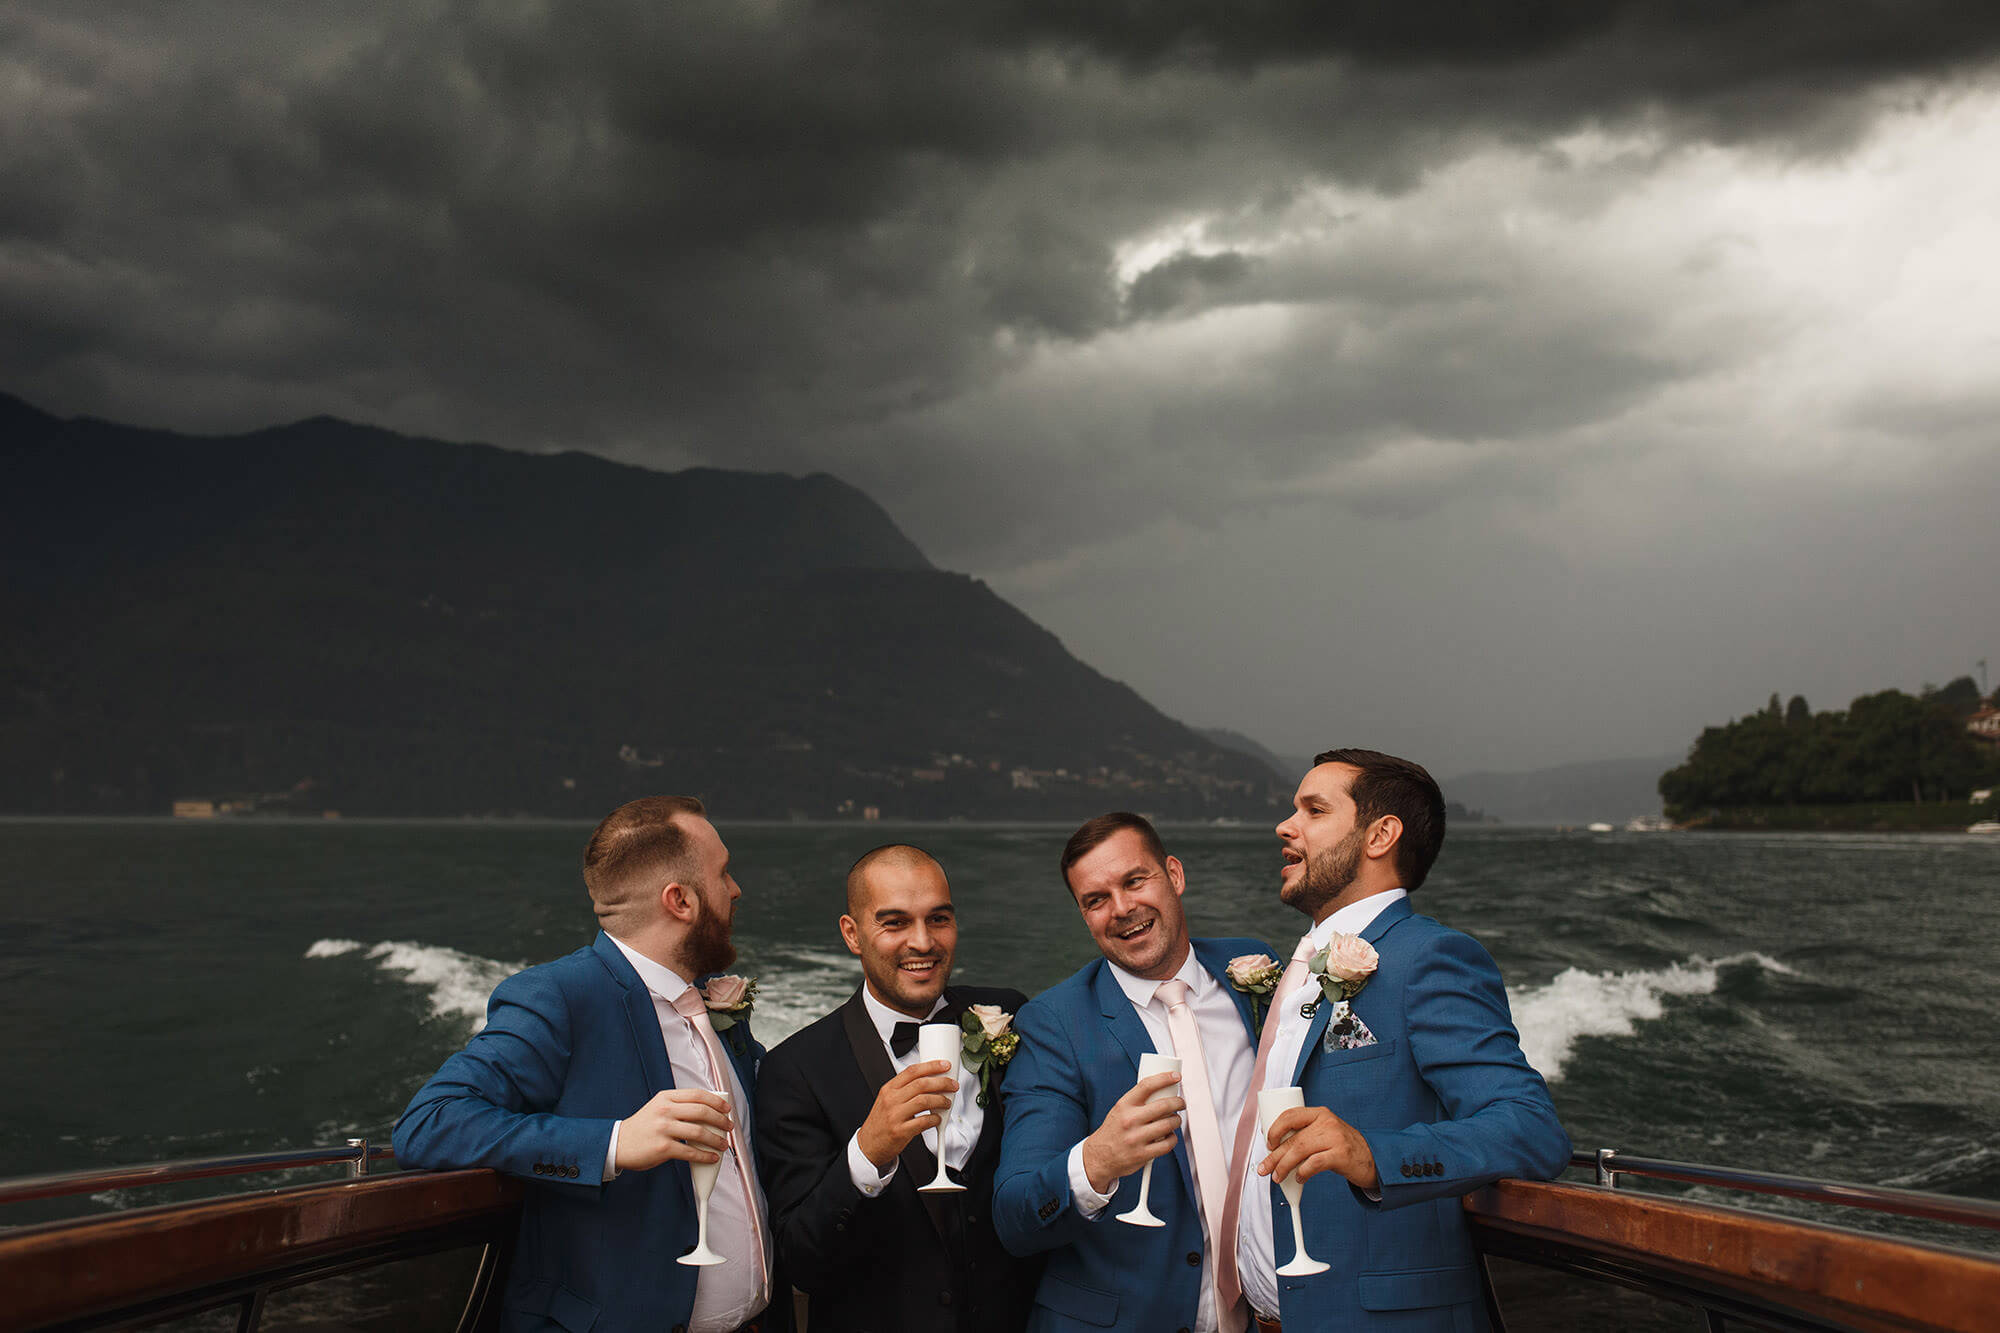 the guys on Lake Como wedding